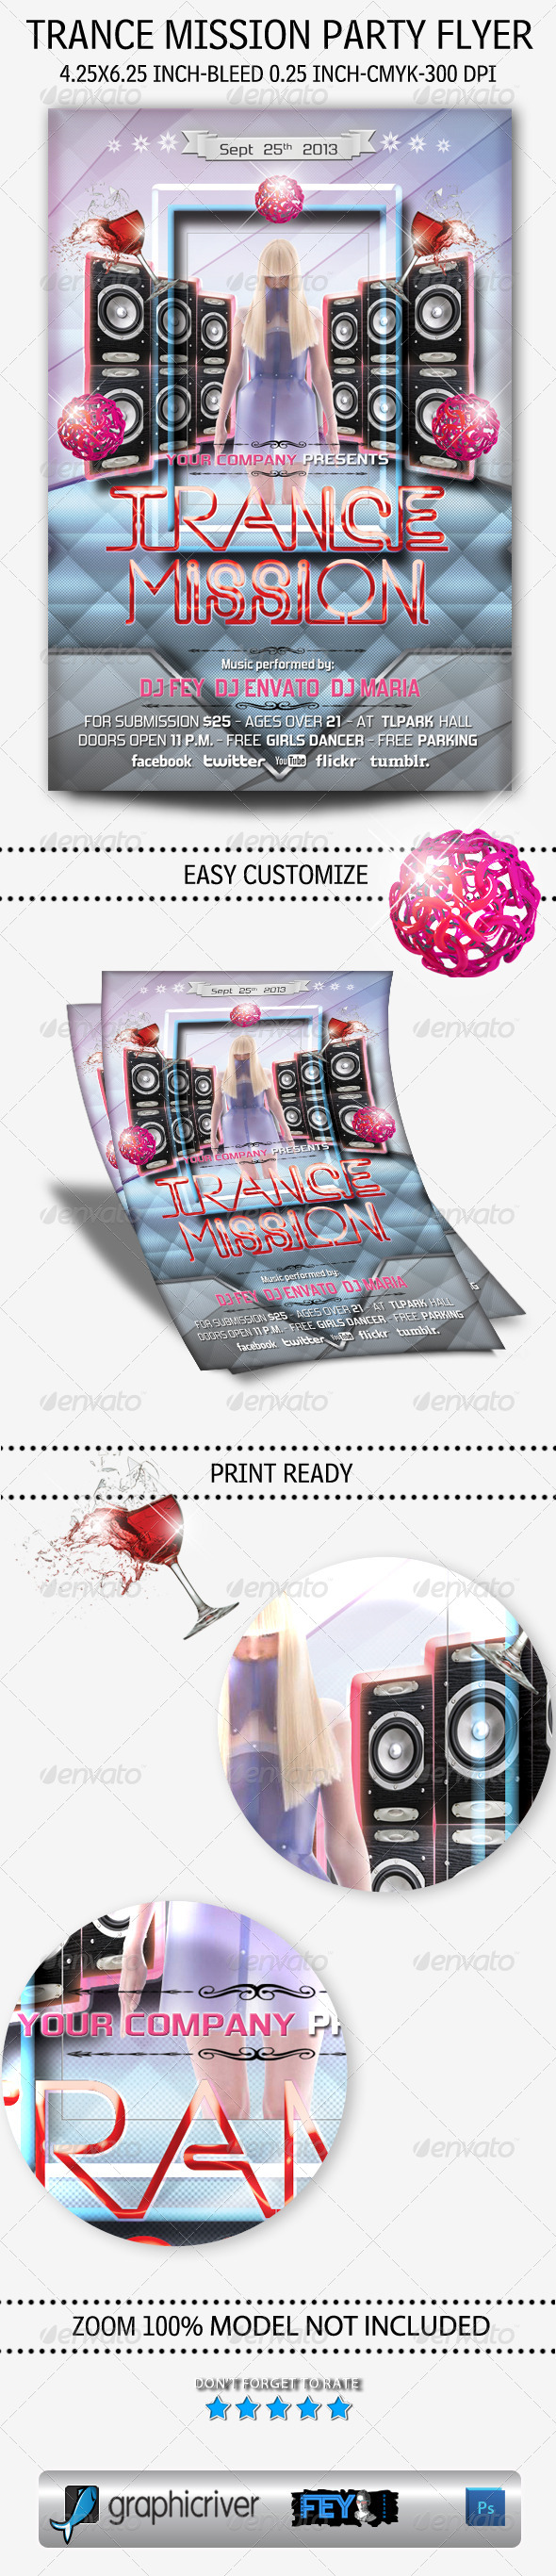 GraphicRiver Trance Mission Party Flyer 5460820